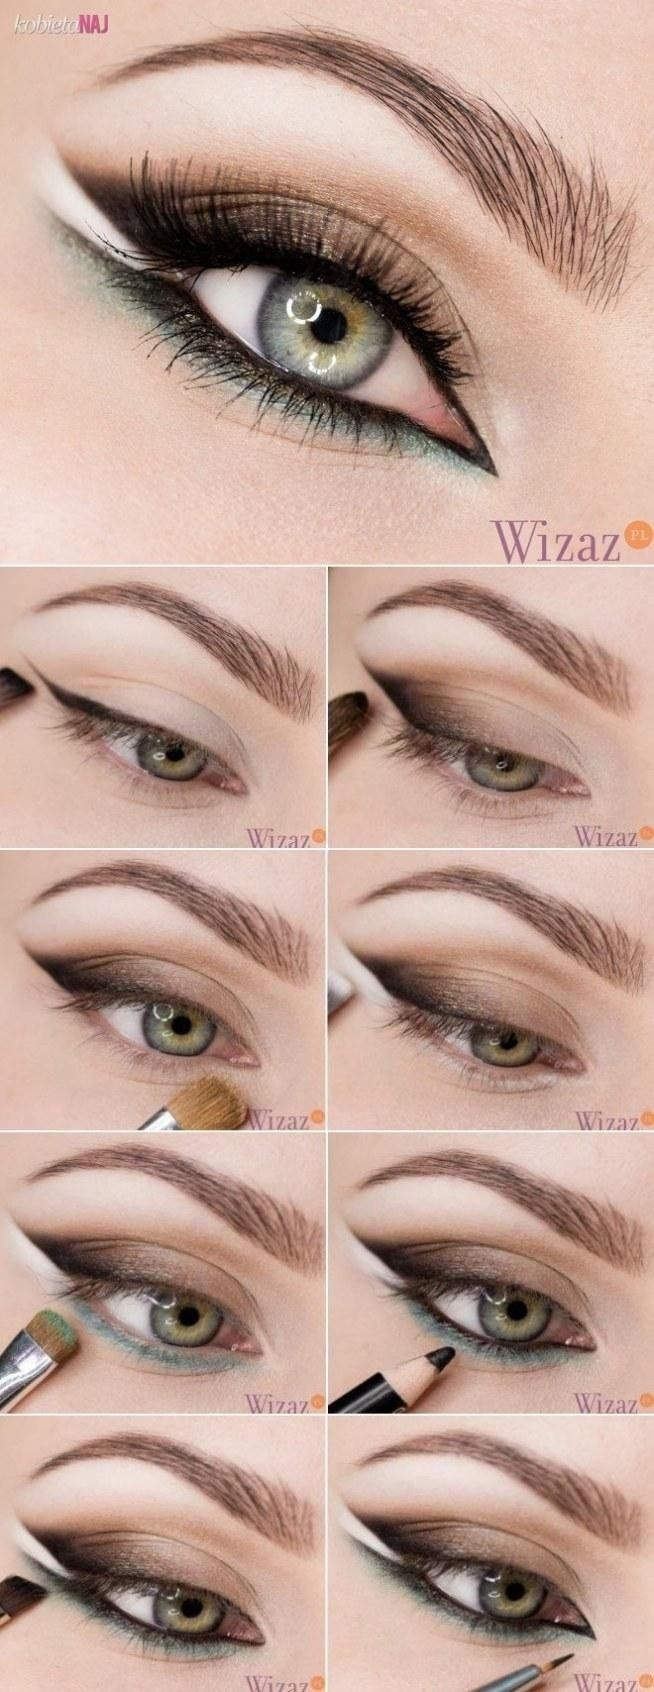 Belle maquillage ♥ #maquillage #yeux #personnes http://amzn.to/2sNPLmB